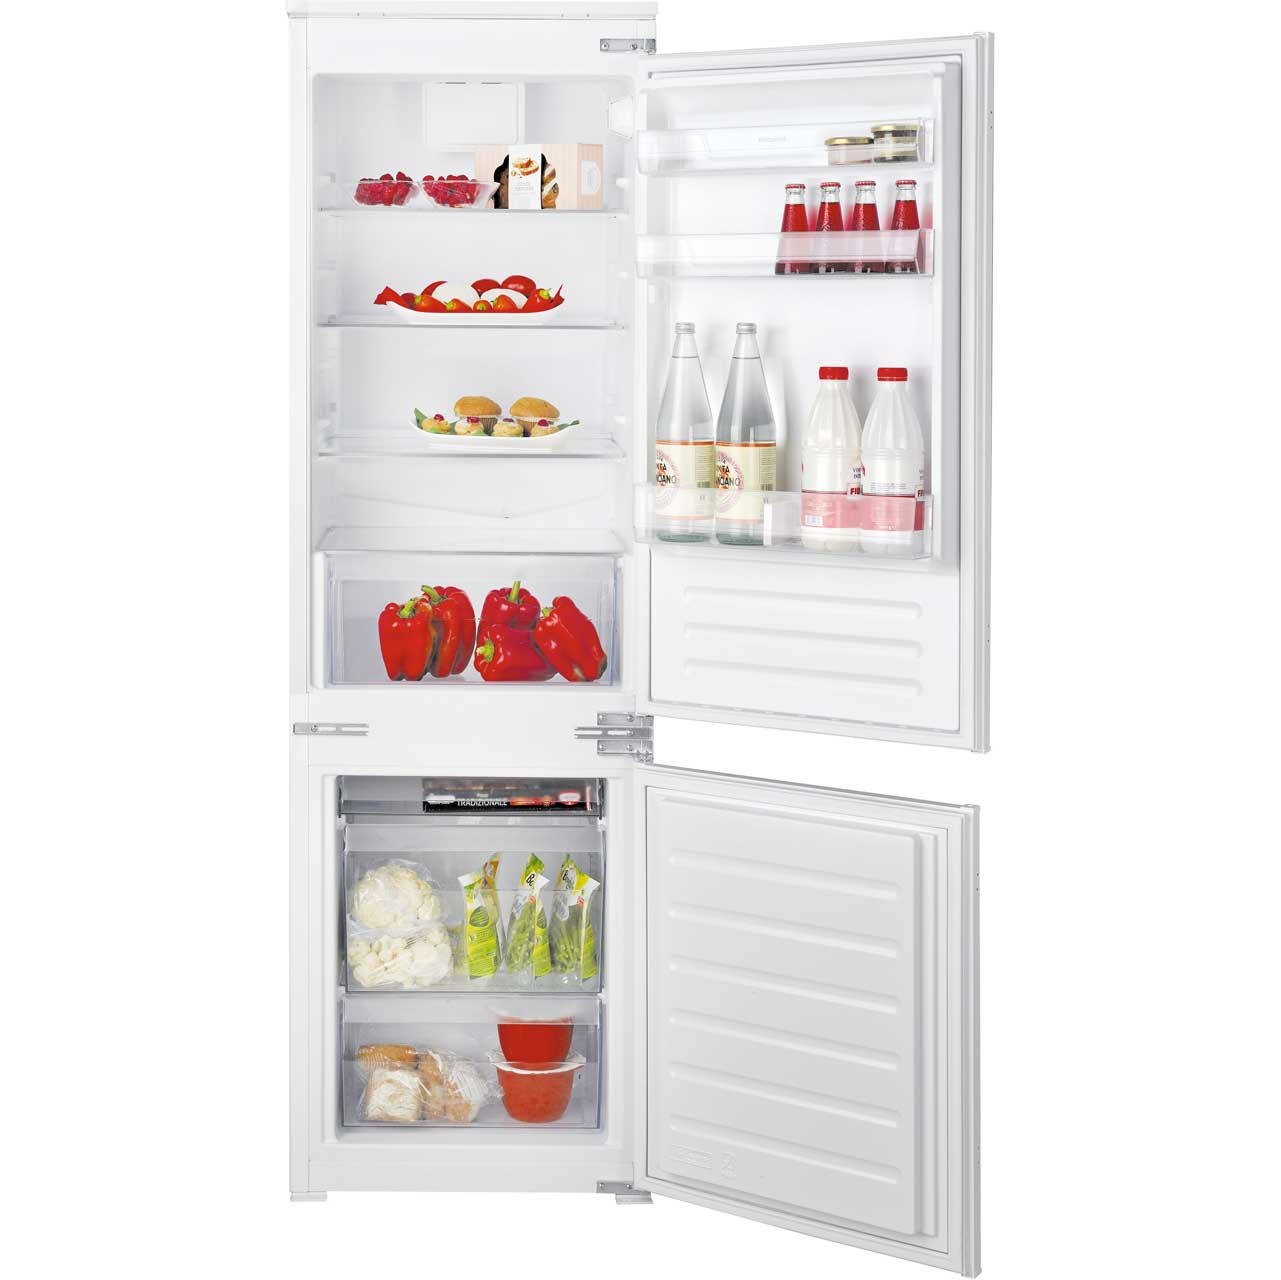 Hotpoint HMCB7030AA Integrated Fridge Freezer in White